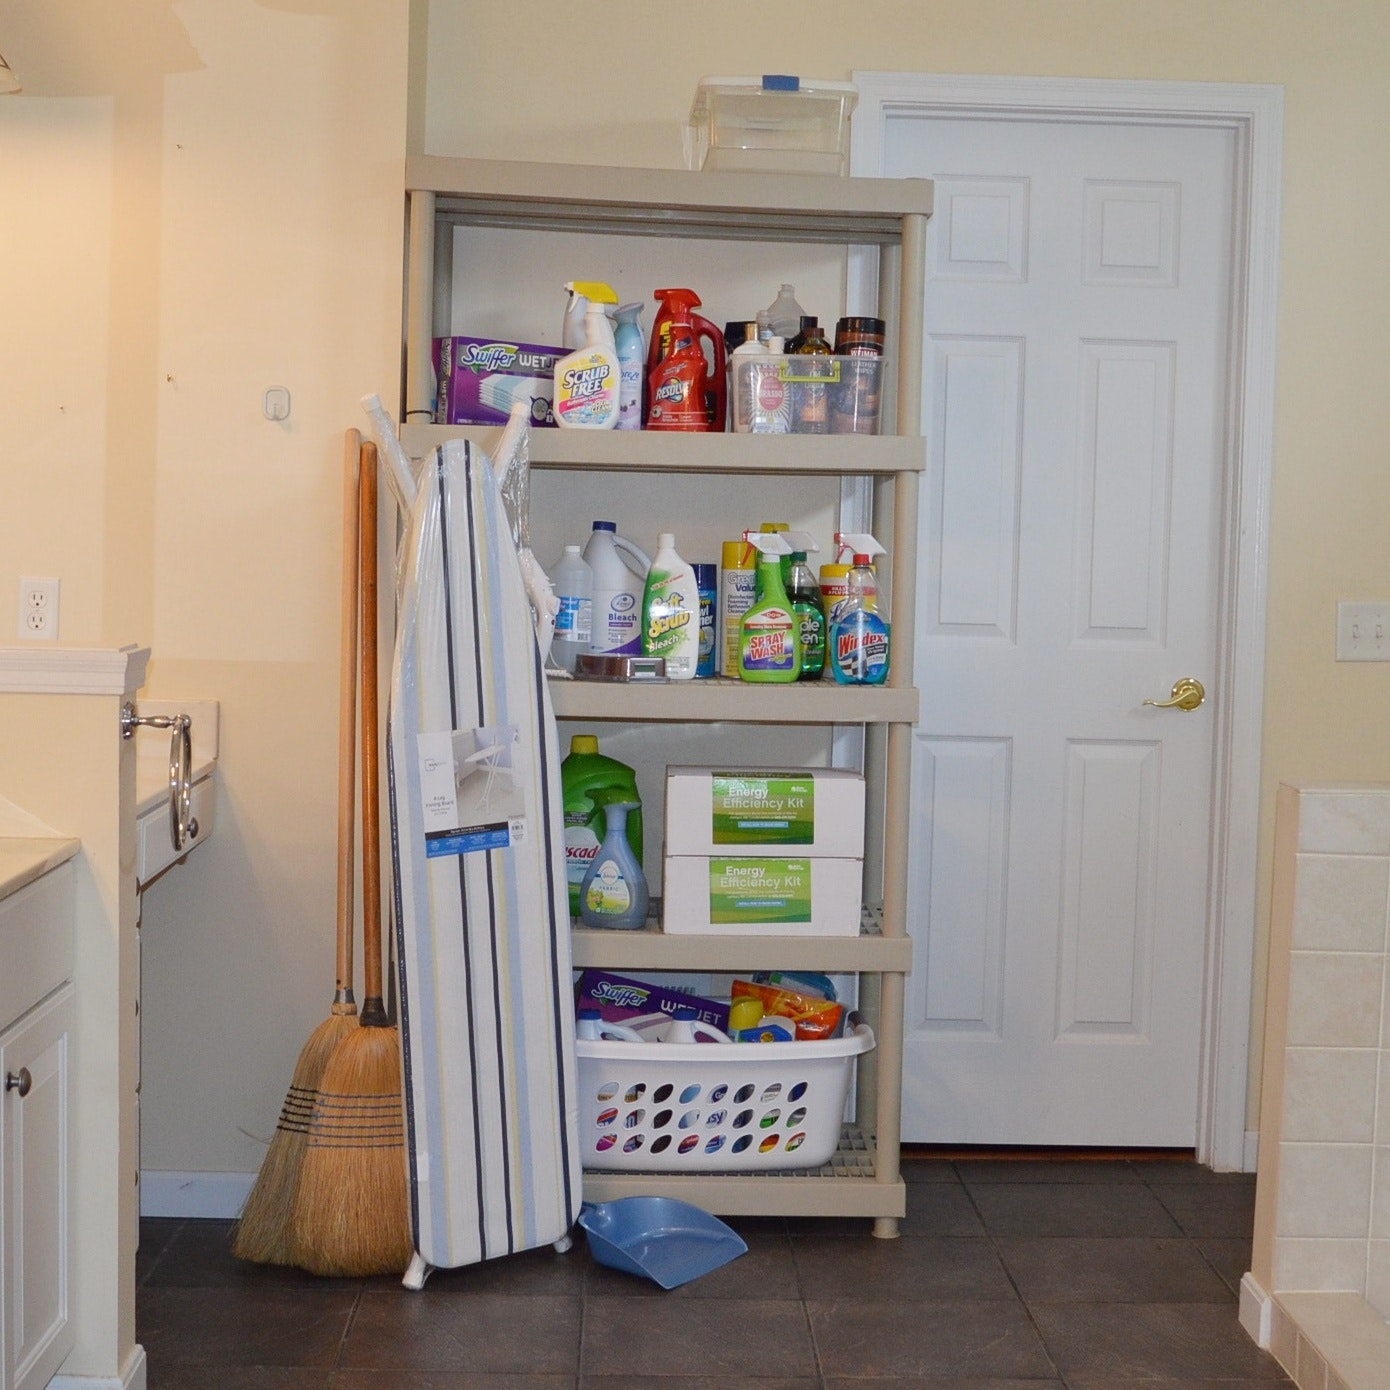 Household Supplies with Shelving